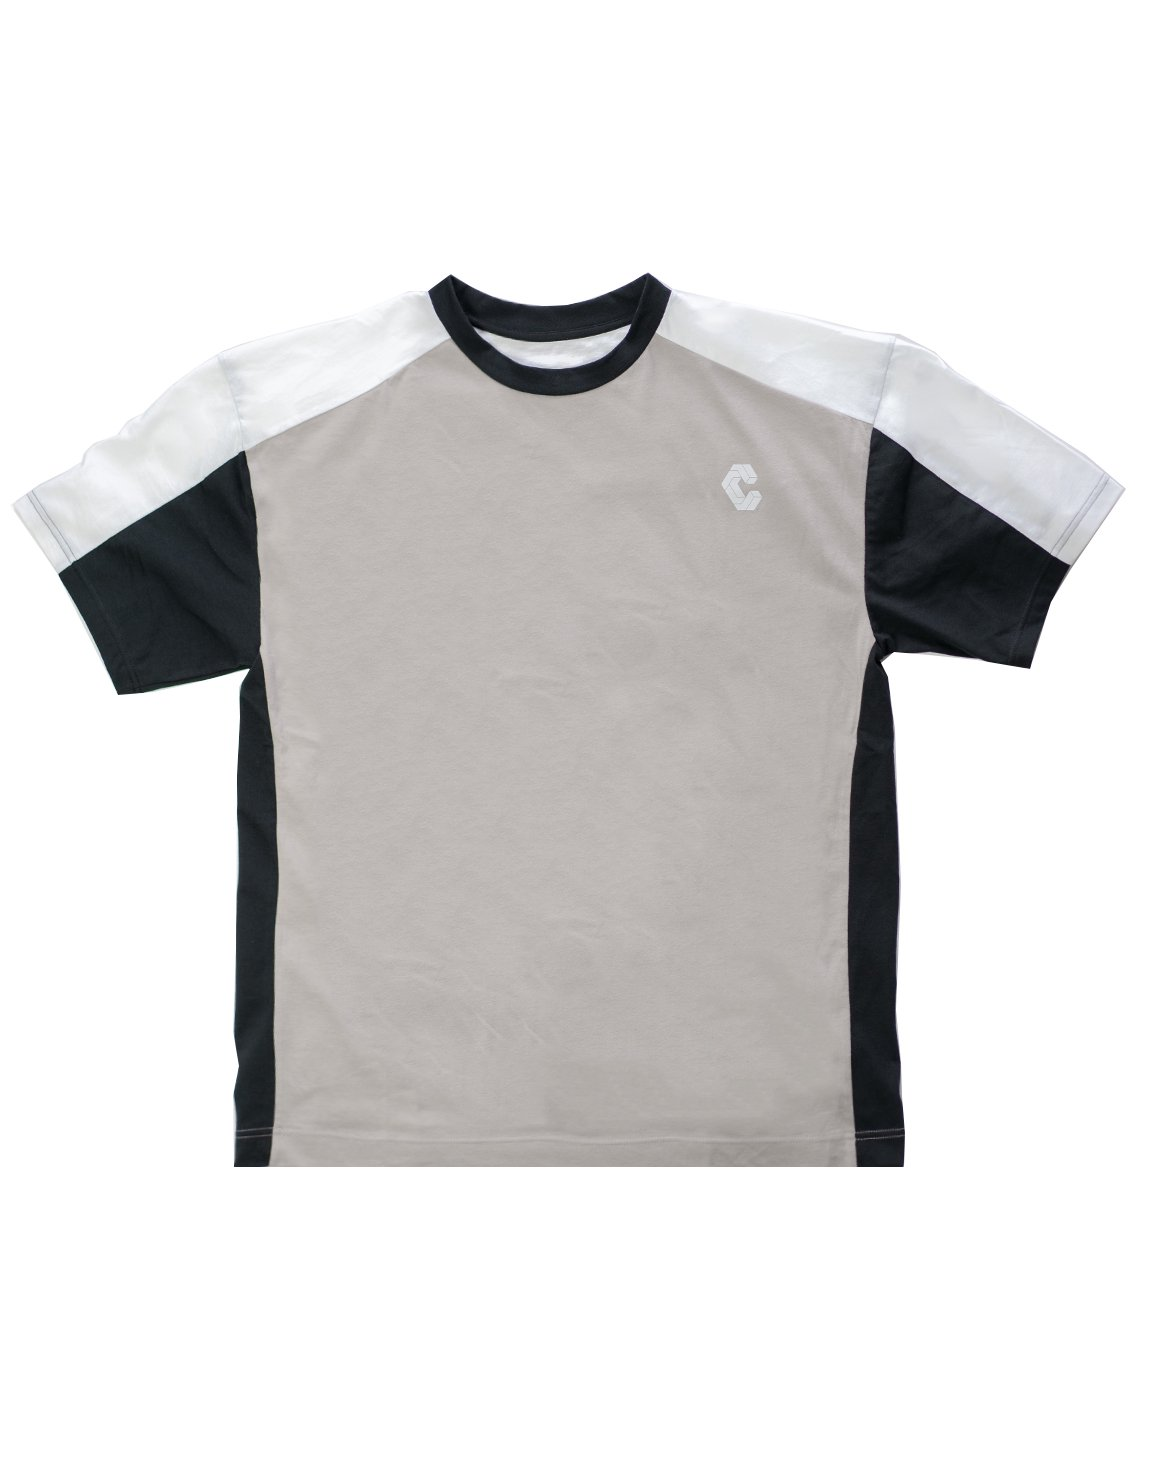 <img class='new_mark_img1' src='https://img.shop-pro.jp/img/new/icons1.gif' style='border:none;display:inline;margin:0px;padding:0px;width:auto;' />CRONOS BACK LOGO OVER SIZE  T-SHIRT GRAY